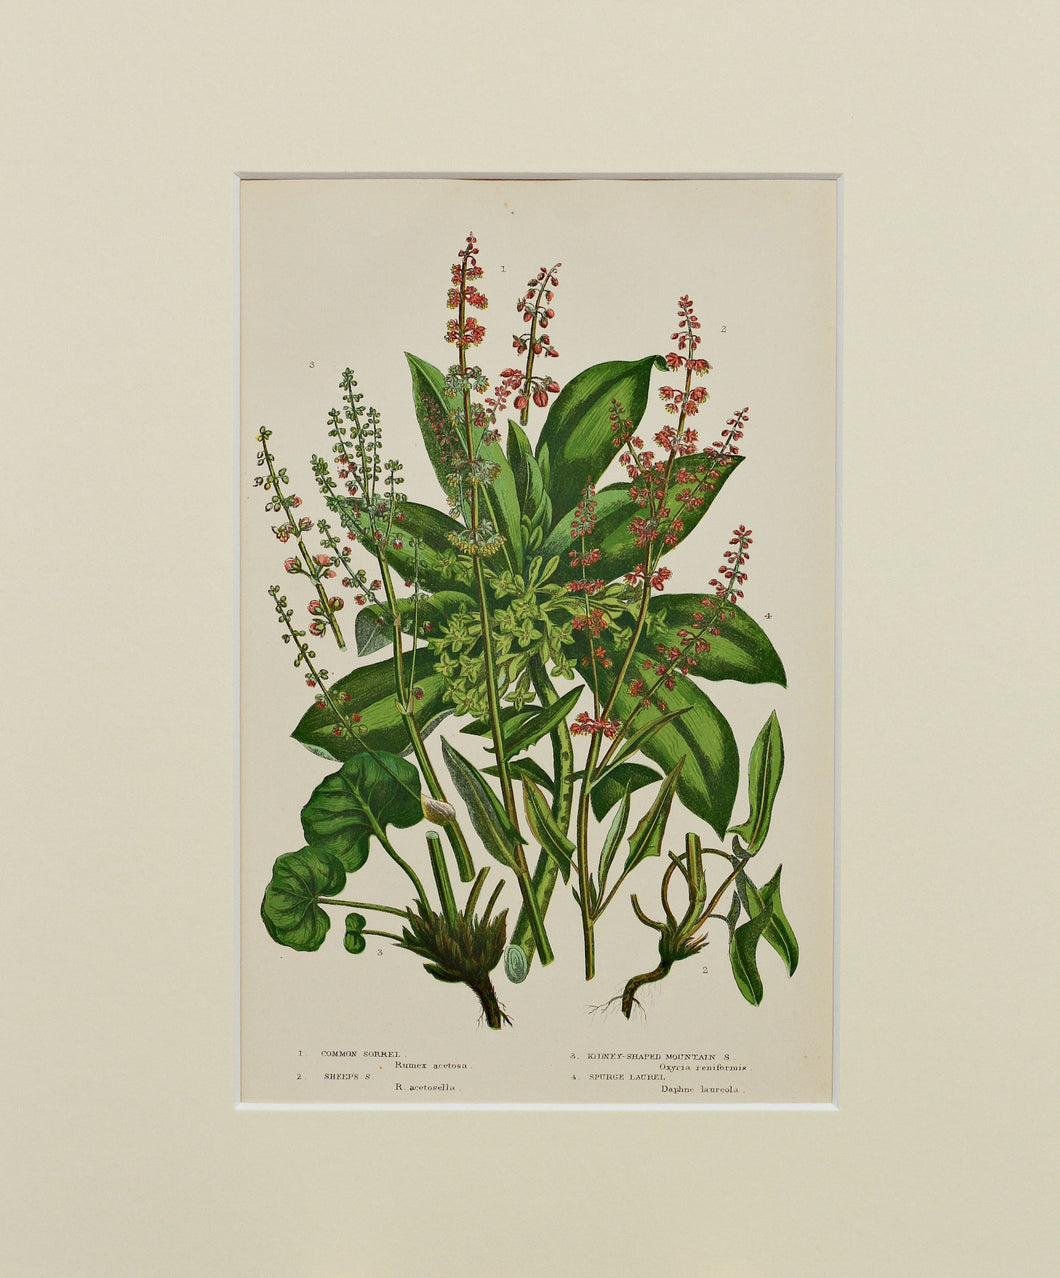 Common Sorrel etc - Antique Wild Plant Chromolithograph circa 1890